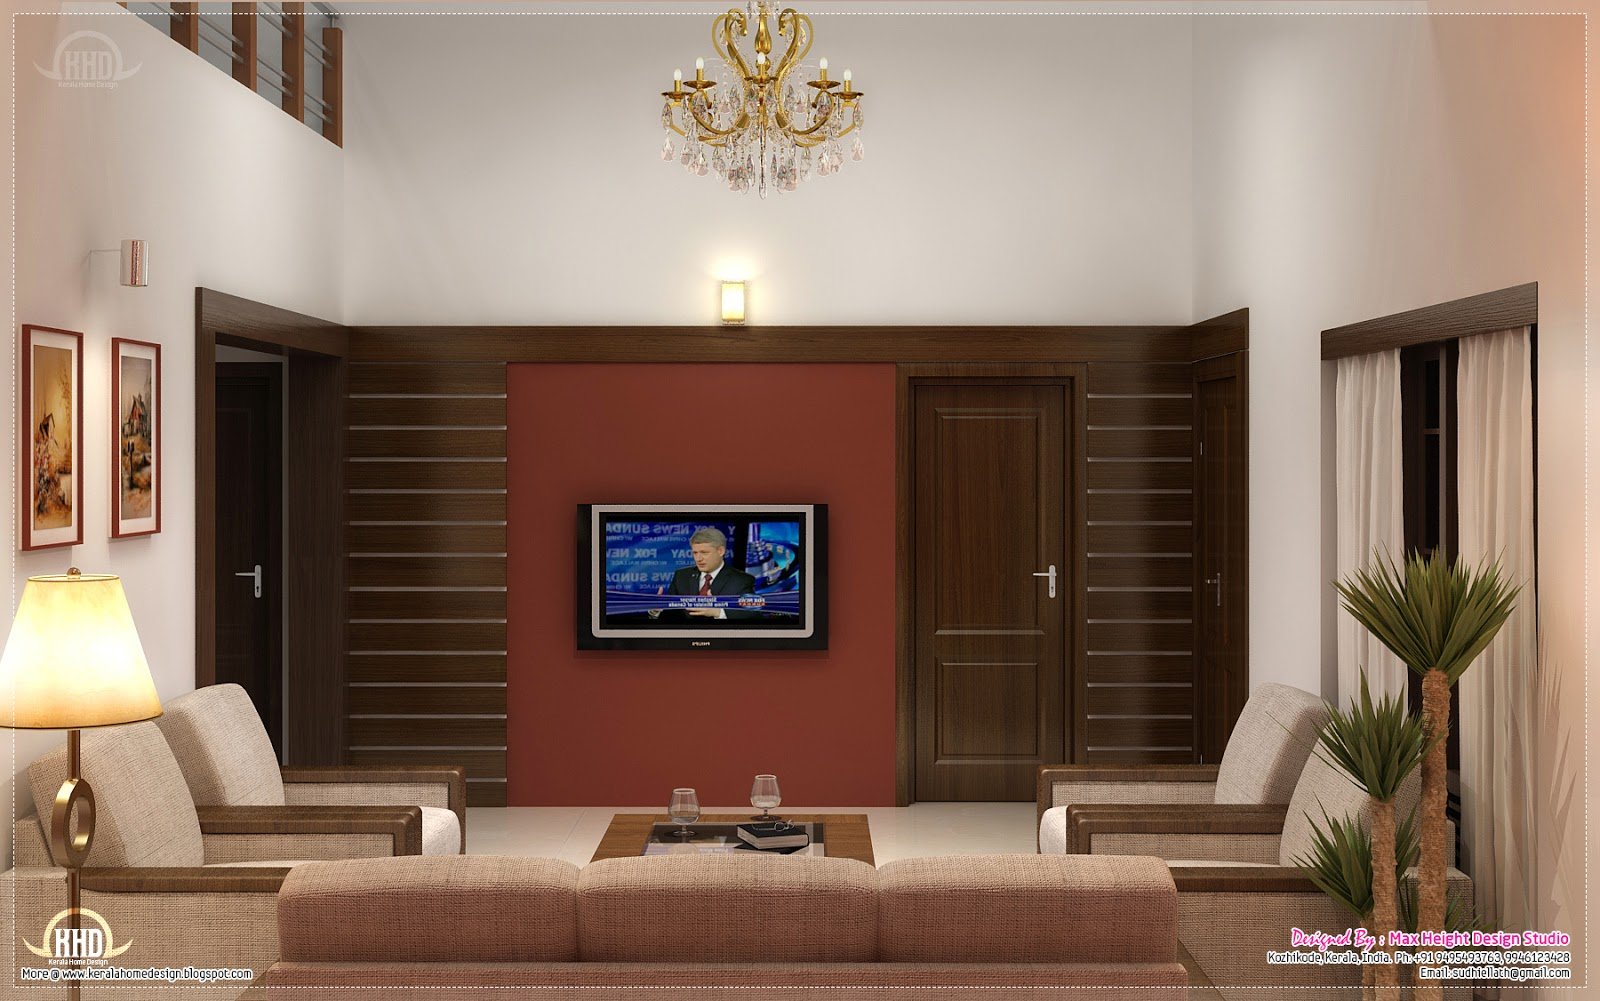 Home interior design ideas kerala home design and floor for Living room interior design india